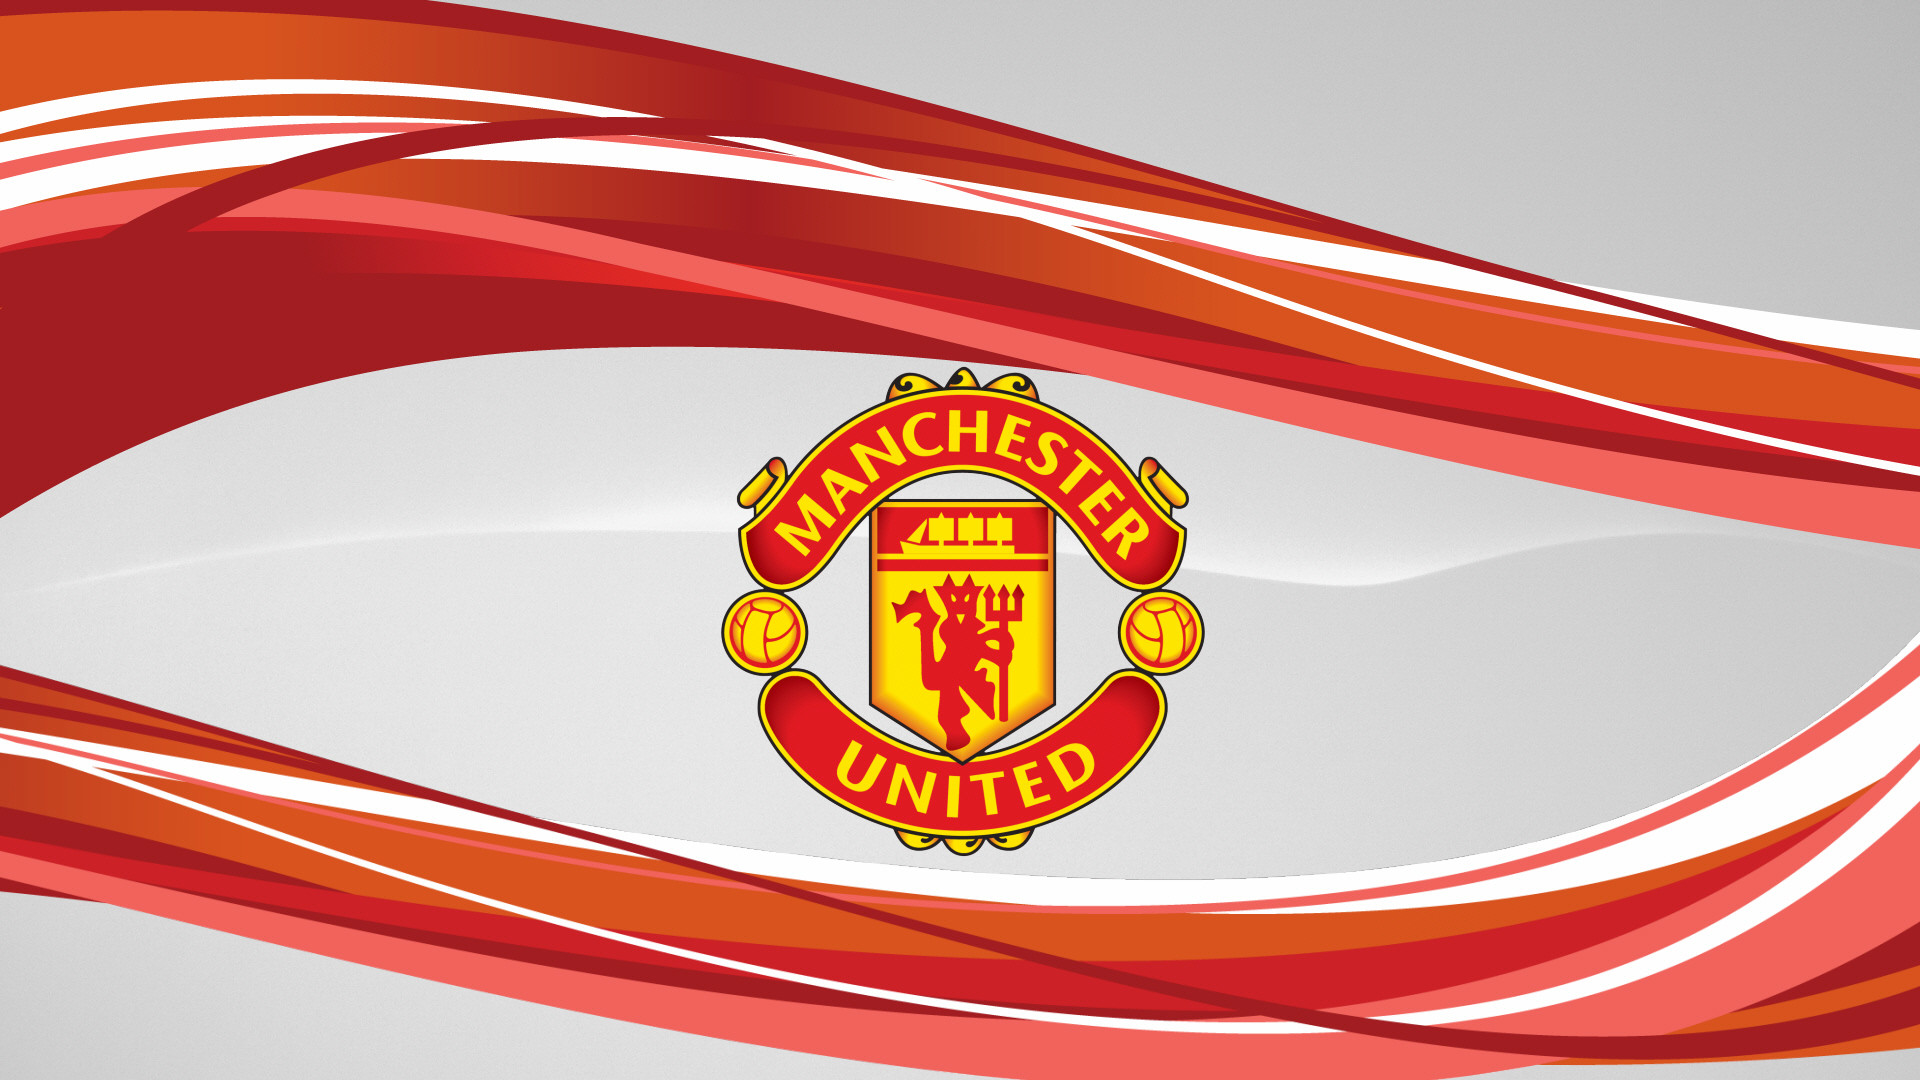 Manchester united hd wallpapers 2018 88 images 1920x1080 manchester united high def logo wallpapers wallpapers voltagebd Choice Image